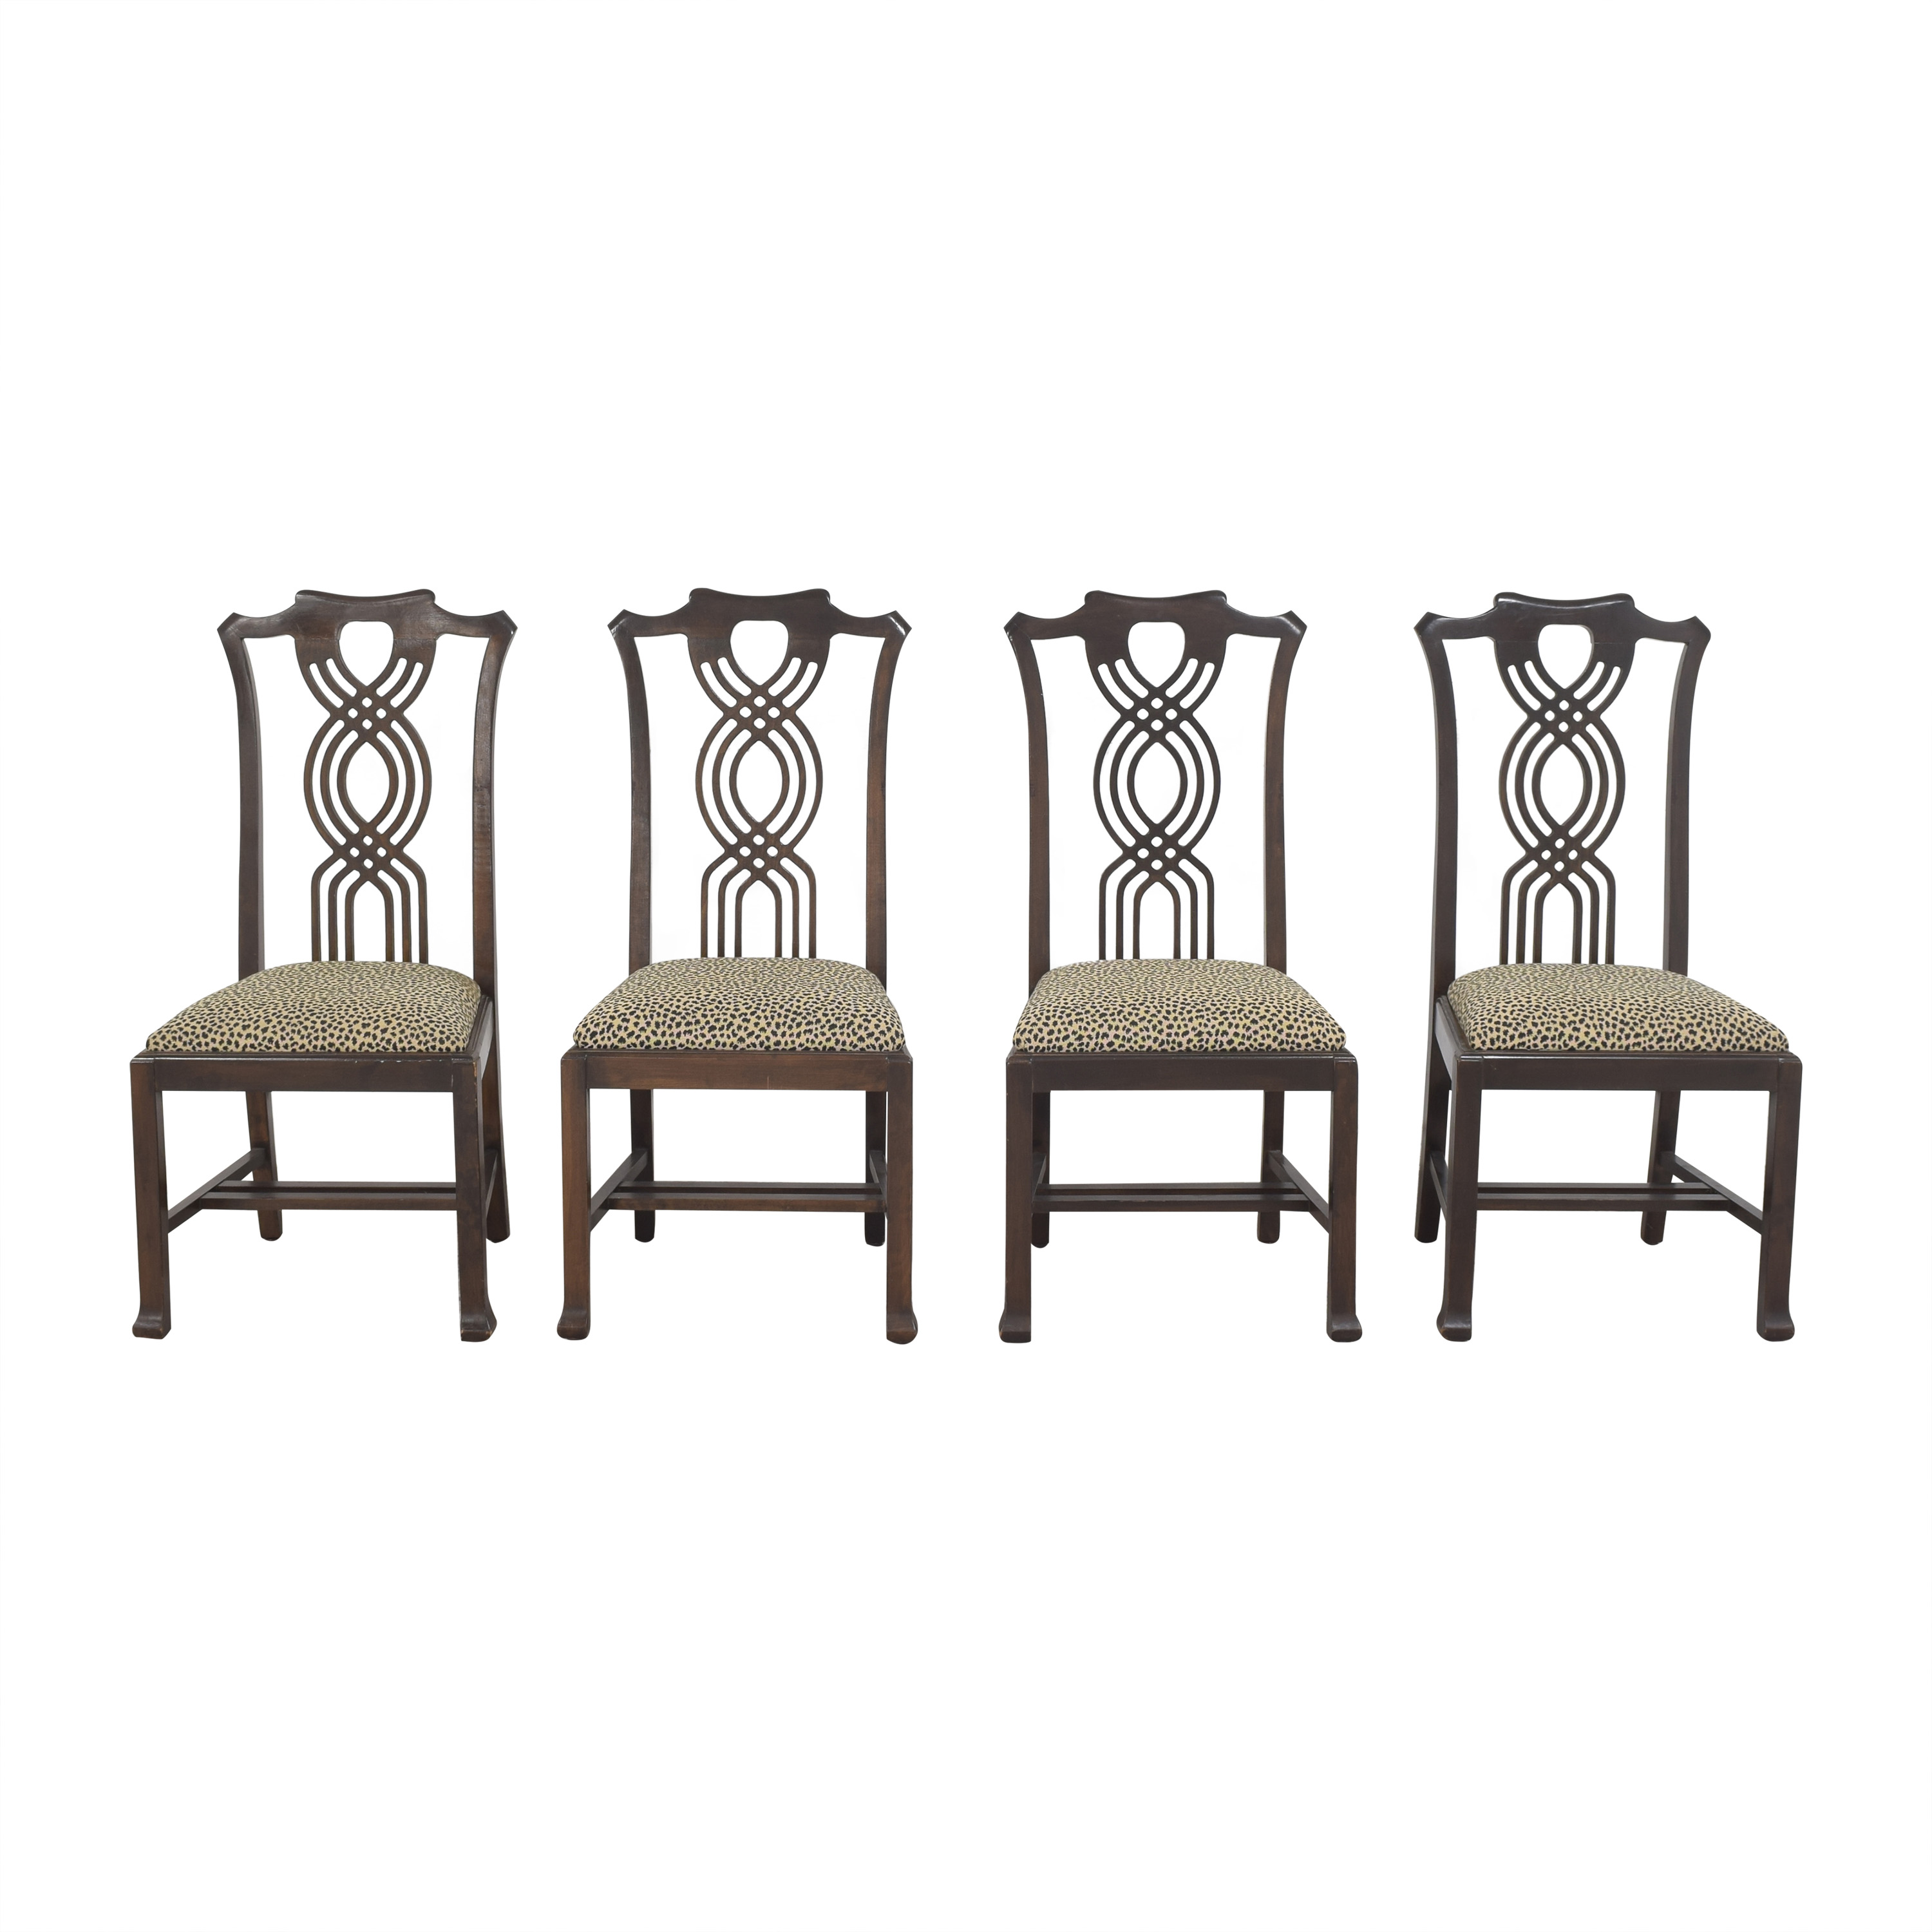 Animal Print Upholstered Dining Chairs ct